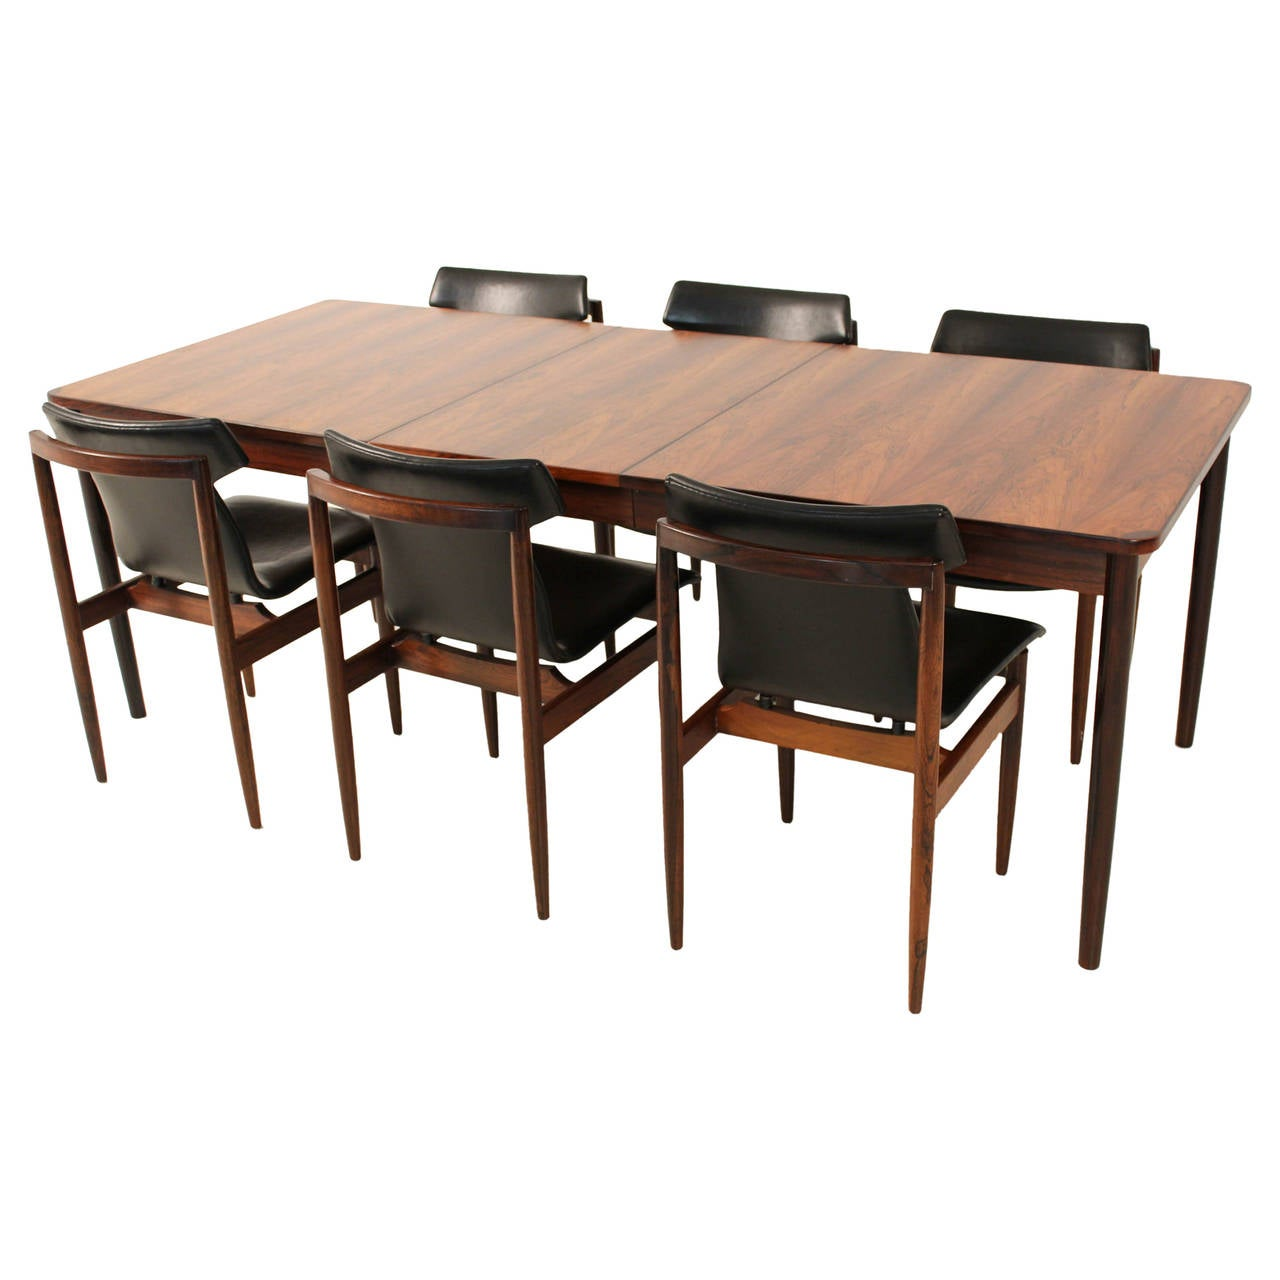 Mid century modern dining table by fristho at 1stdibs for Dining room tables 1940s